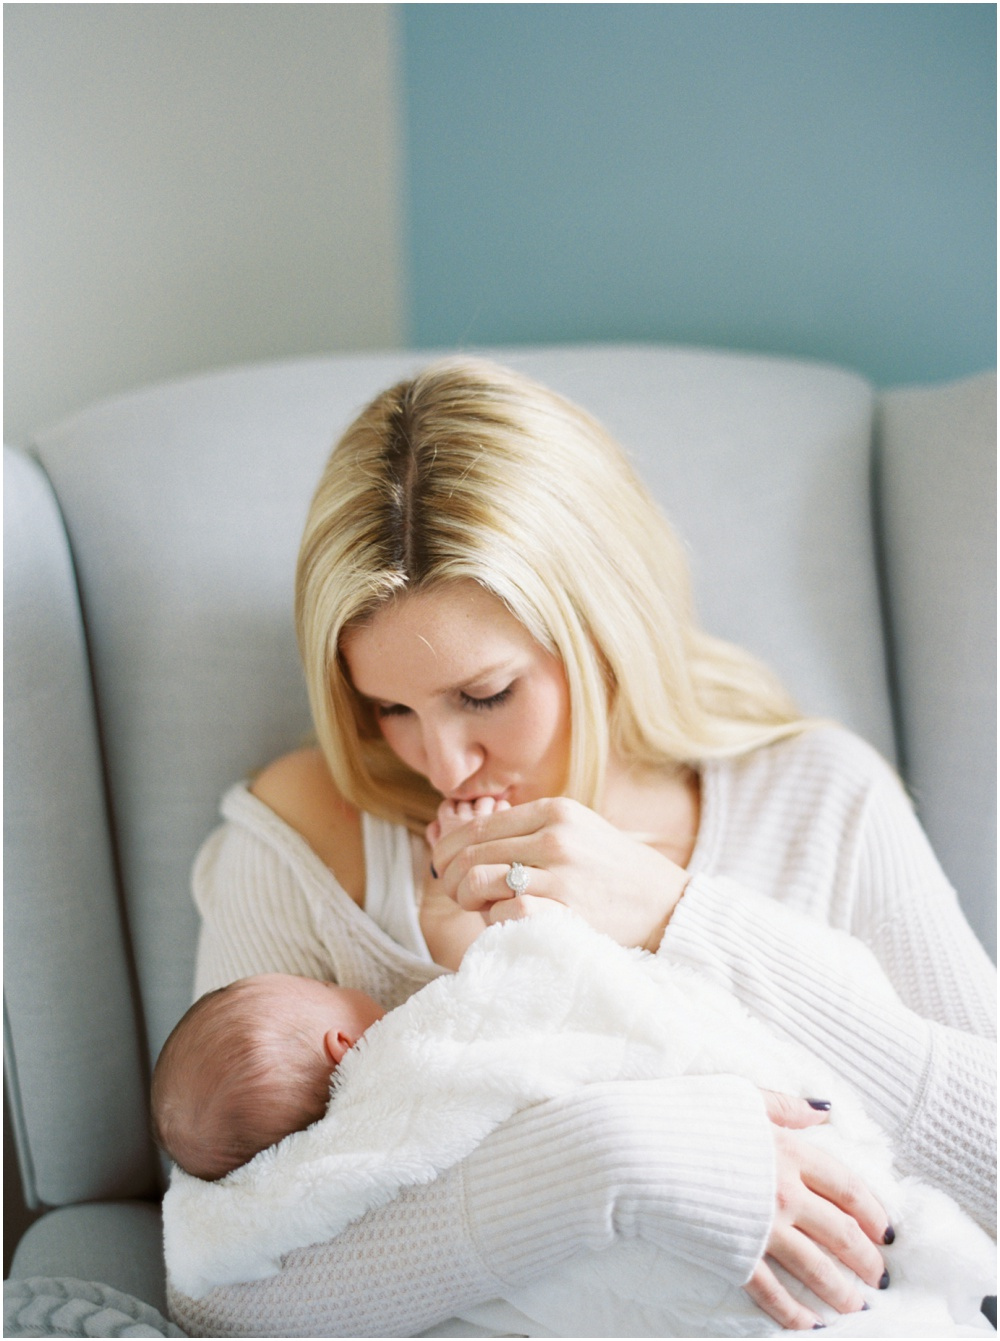 Newborn Photography by Erika Brown and featured on The Fount Collective, a lifestyle publication and community devoted to the art of being a mother._0007.jpg